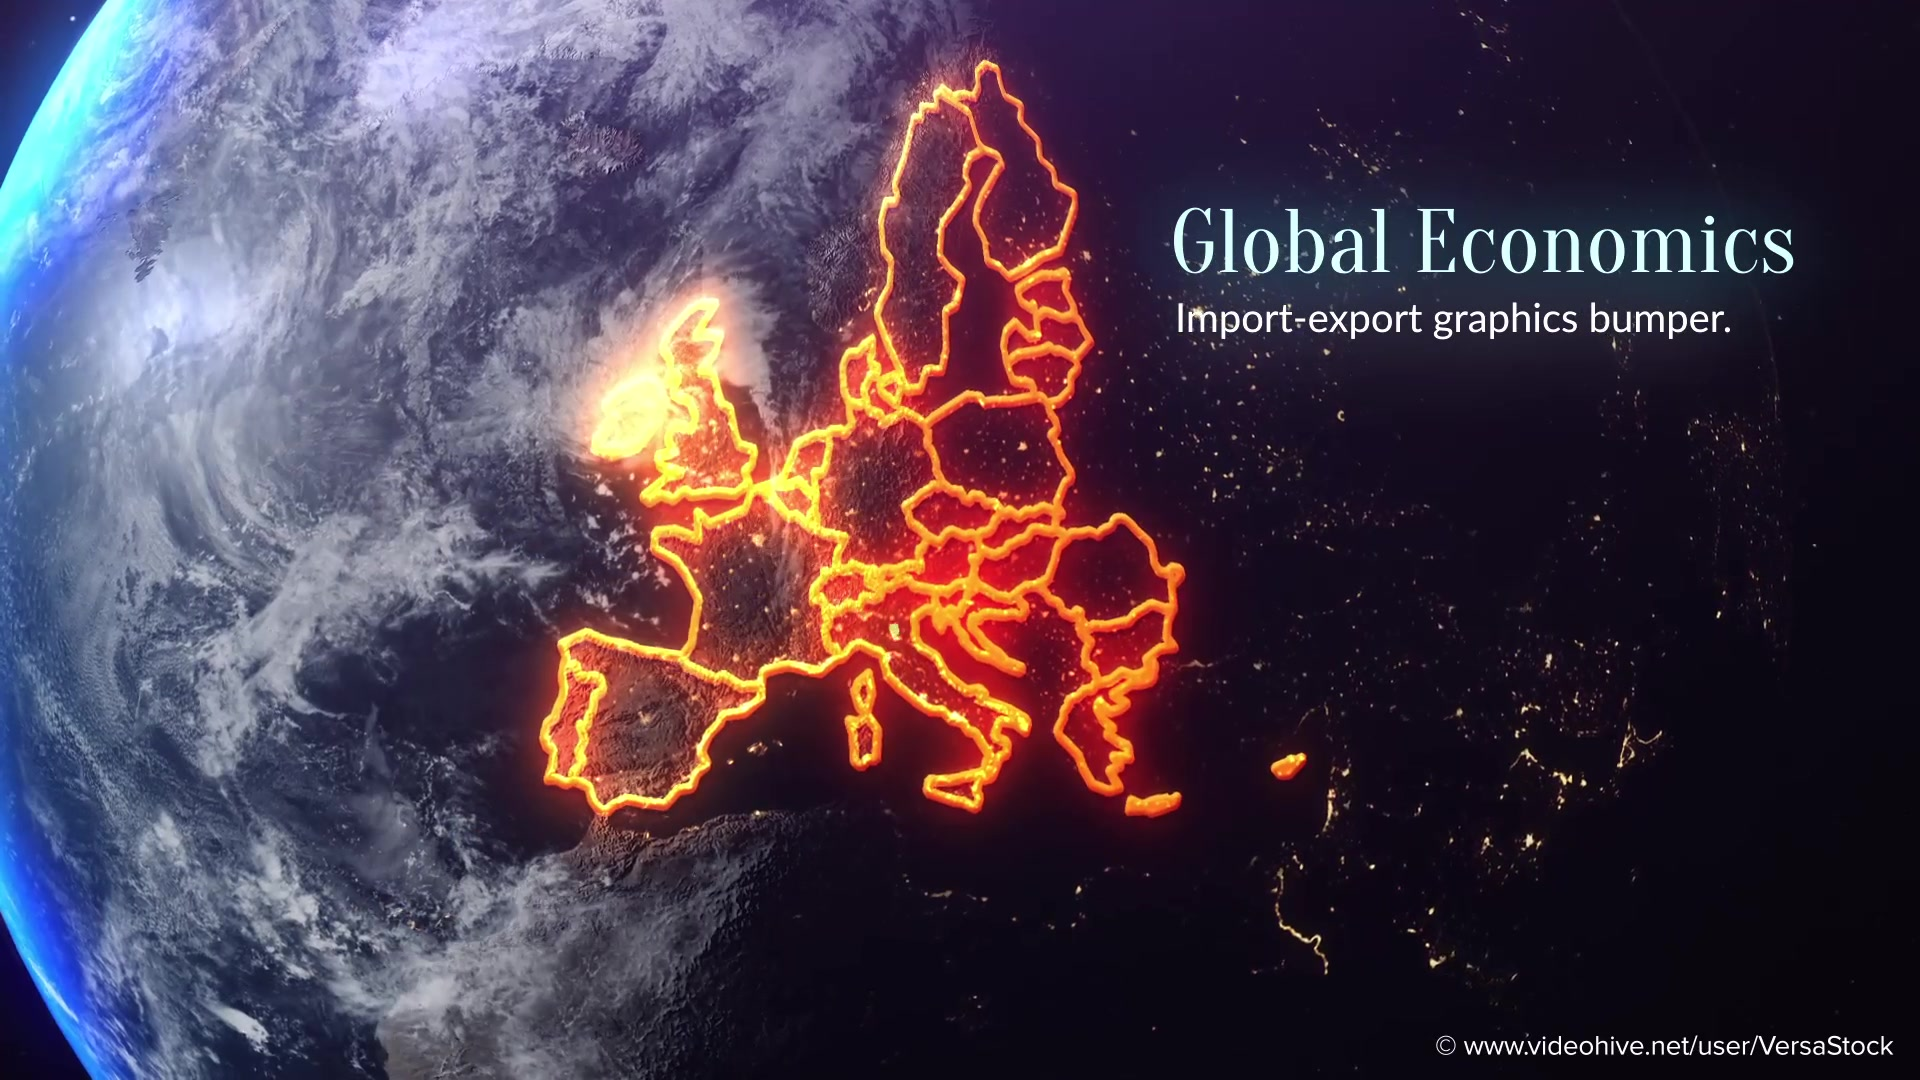 Global Economics From Space Infographics Videohive 25031384 After Effects Image 4